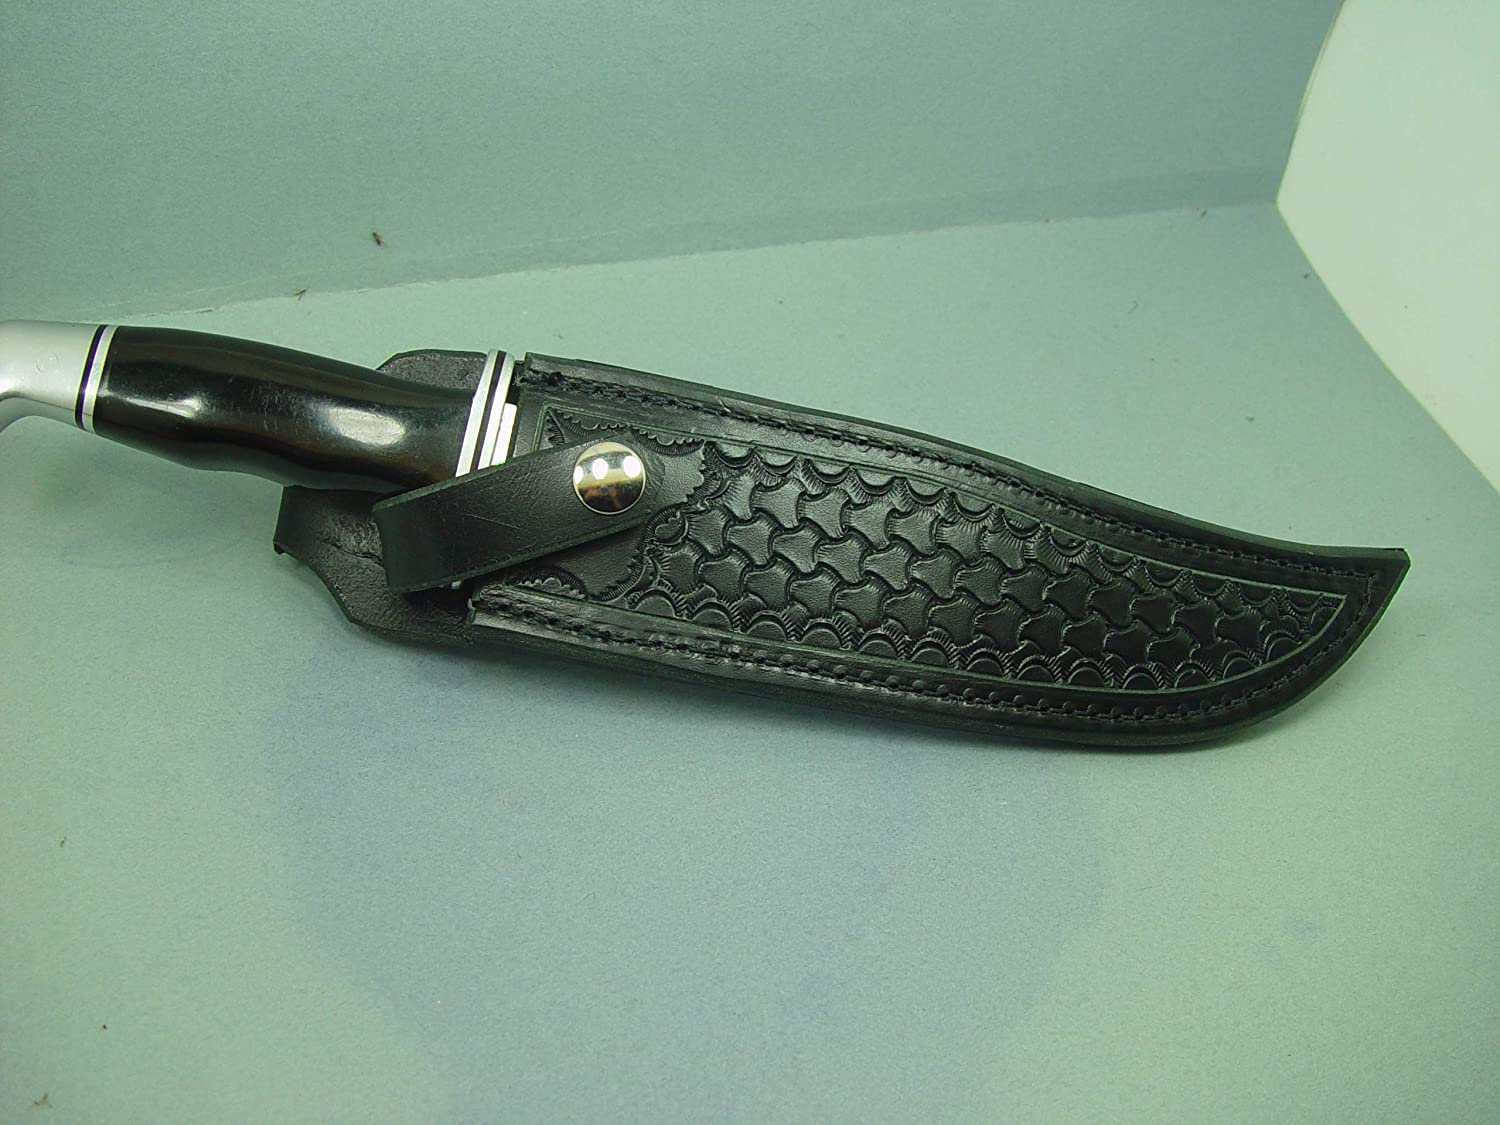 Free Max 82% OFF Shipping Cheap Bargain Gift Custom knife sheath for the buck o The knife. 120 is made